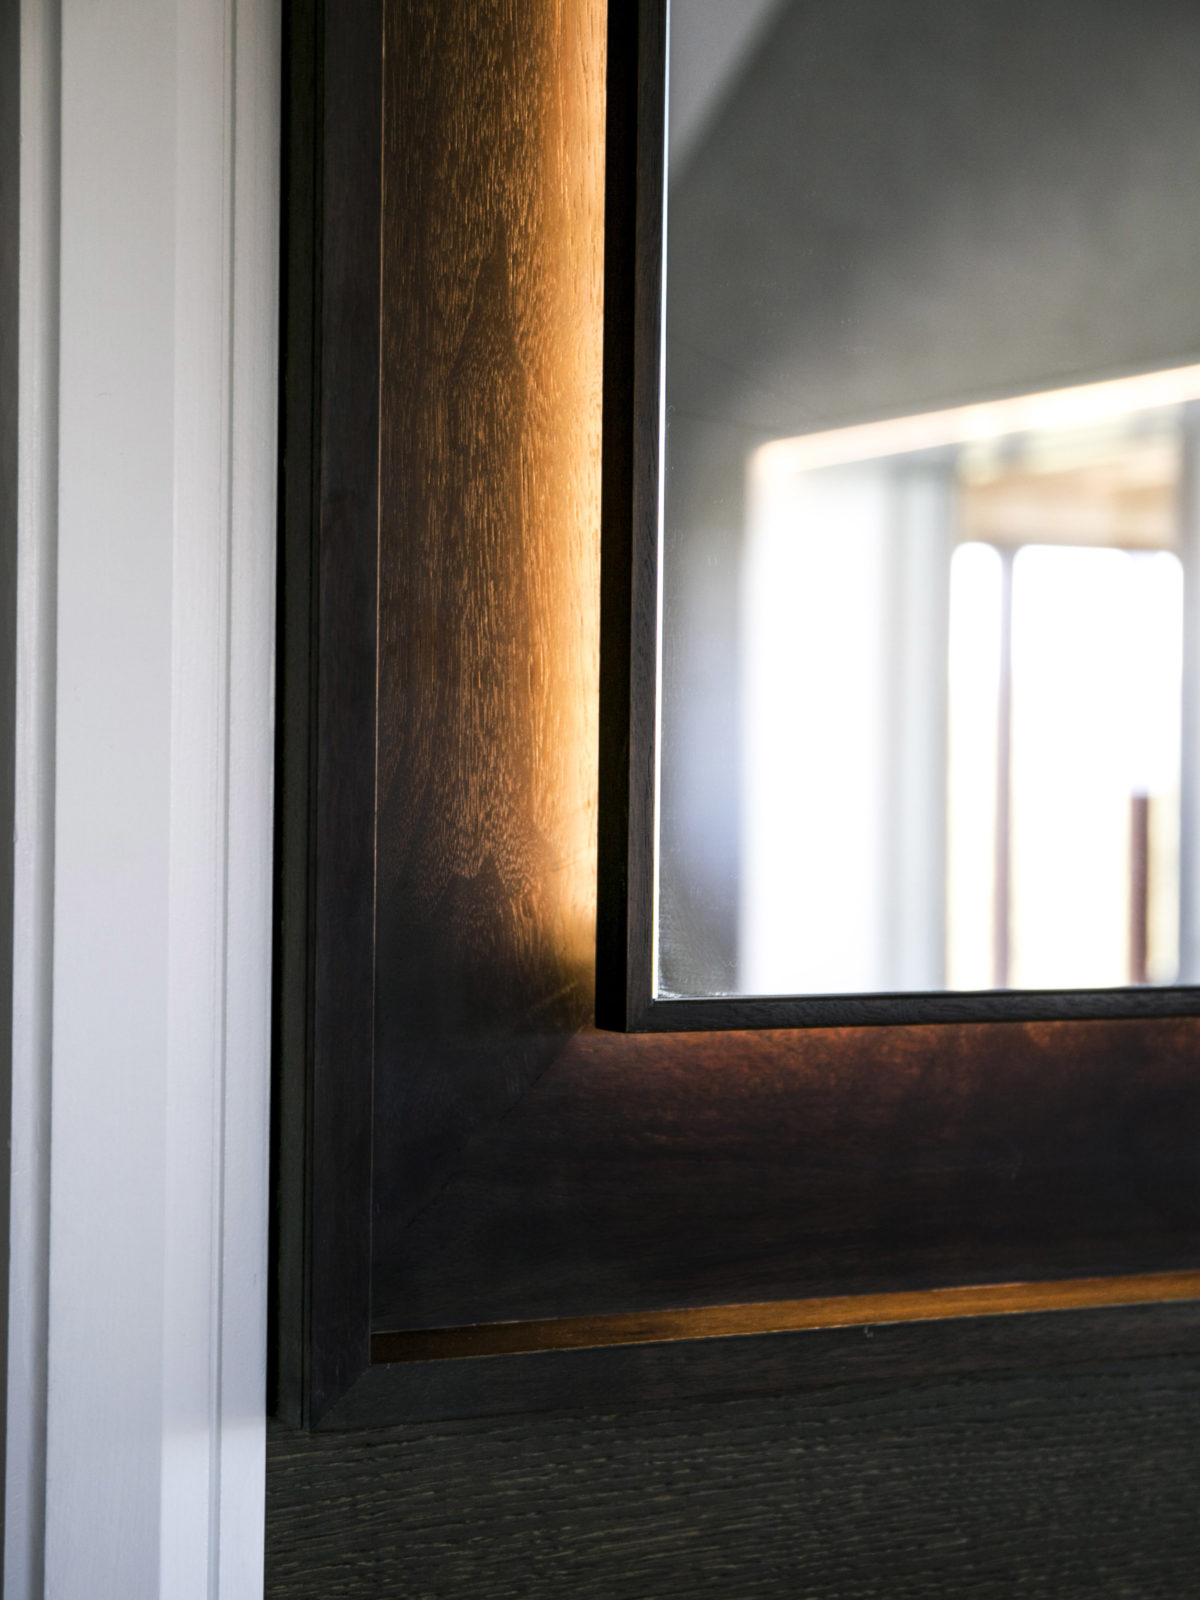 Fumed oak bathroom mirror with back lighting detail